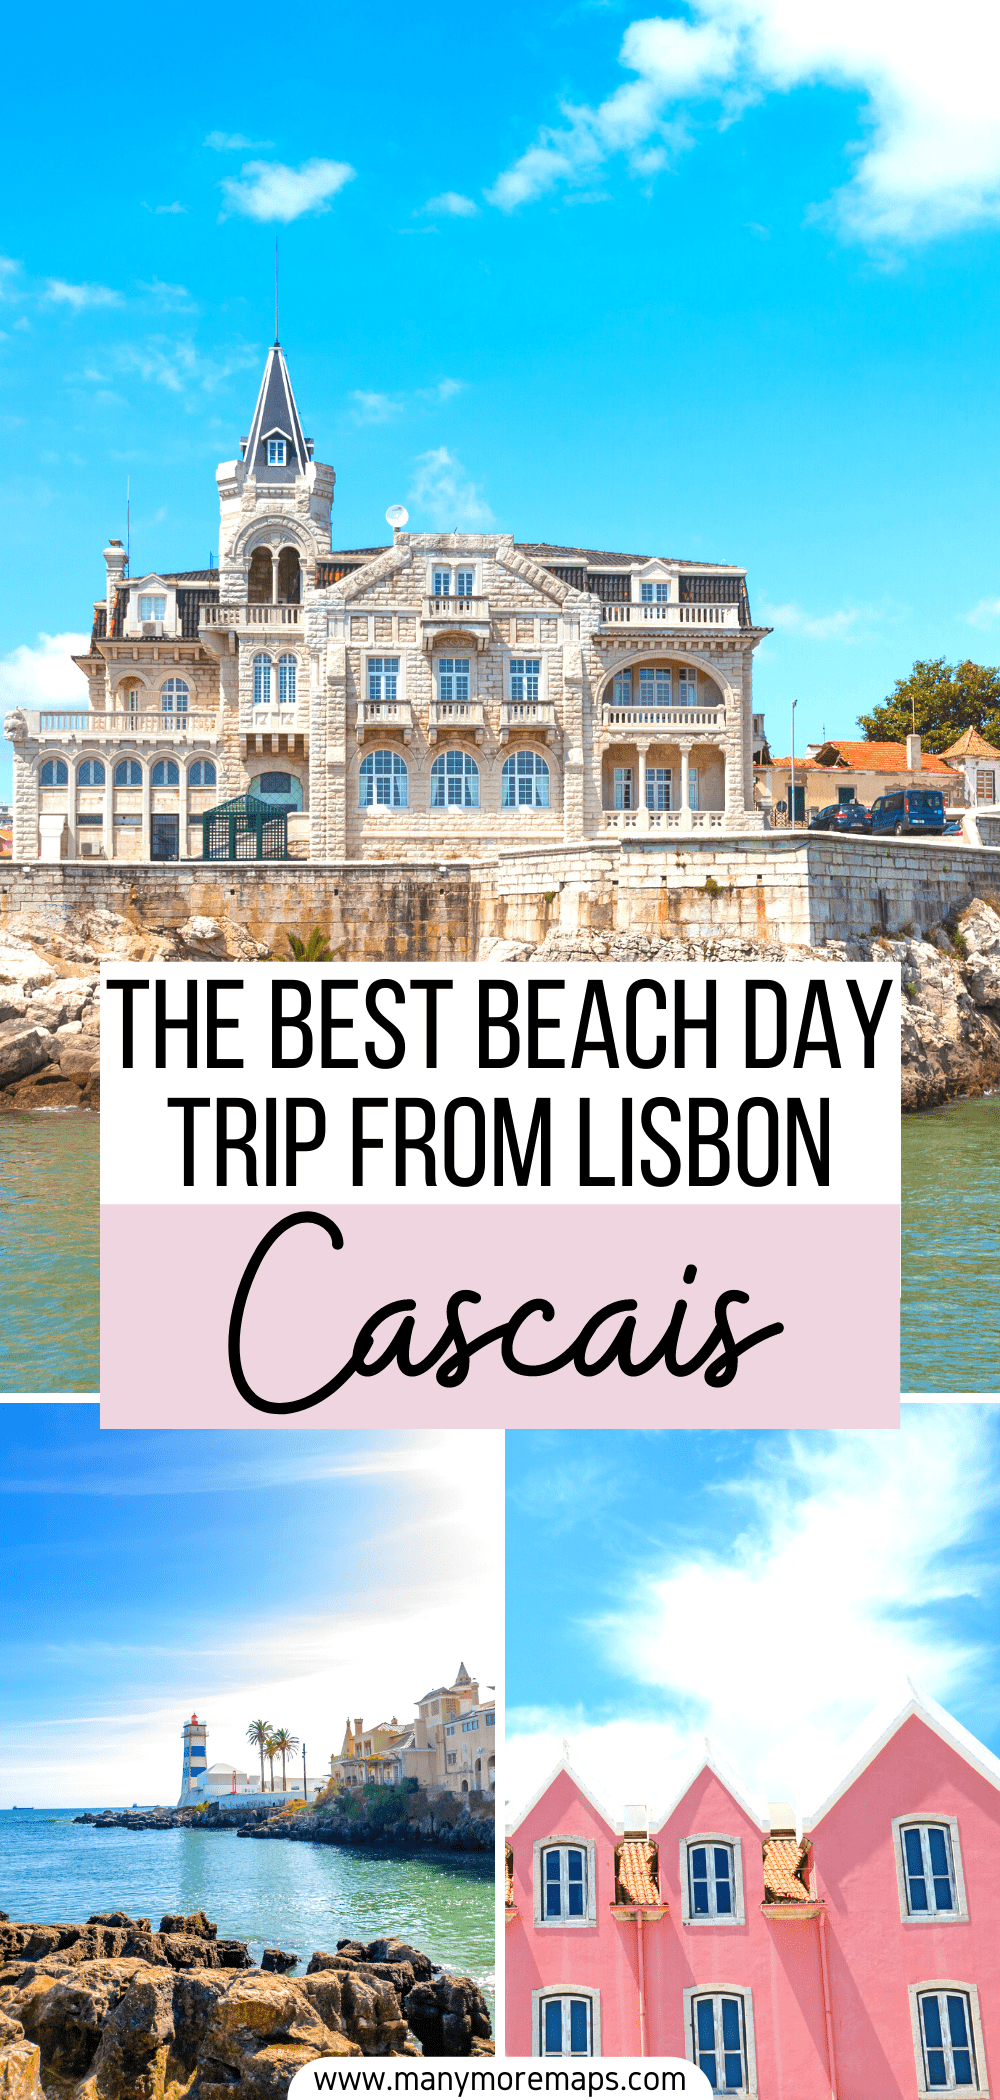 Looking for the best beaches near Lisbon and want to take a day trip to the beach? Cascais is the best place to visit if you're looking to hang out on the beach, go on some coastal walks and visit some historical attractions. Things to do in Cascais Portugal, Cascais beaches, Lisbon beaches, free things to do Lisbon, Lisbon on a budget, Boca do Inferno Cascais, Cascais photos, Cascais town city Portugal, Lisbon best beaches, places to visit near Lisbon, day trips from Lisbon